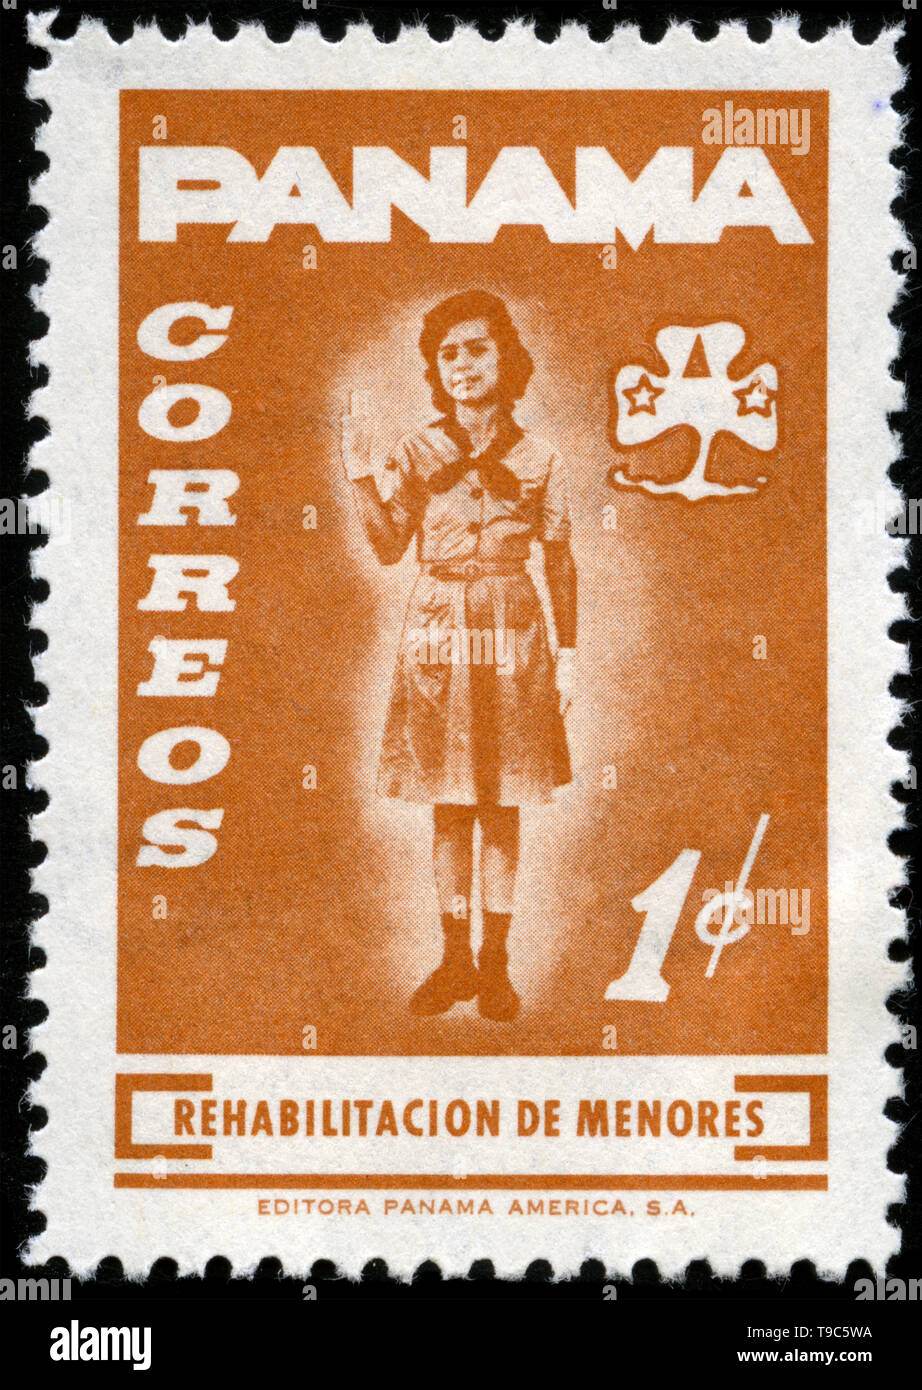 Postage stamp from Panama in the Youth rehabilitation fund series issued in 1964 - Stock Image